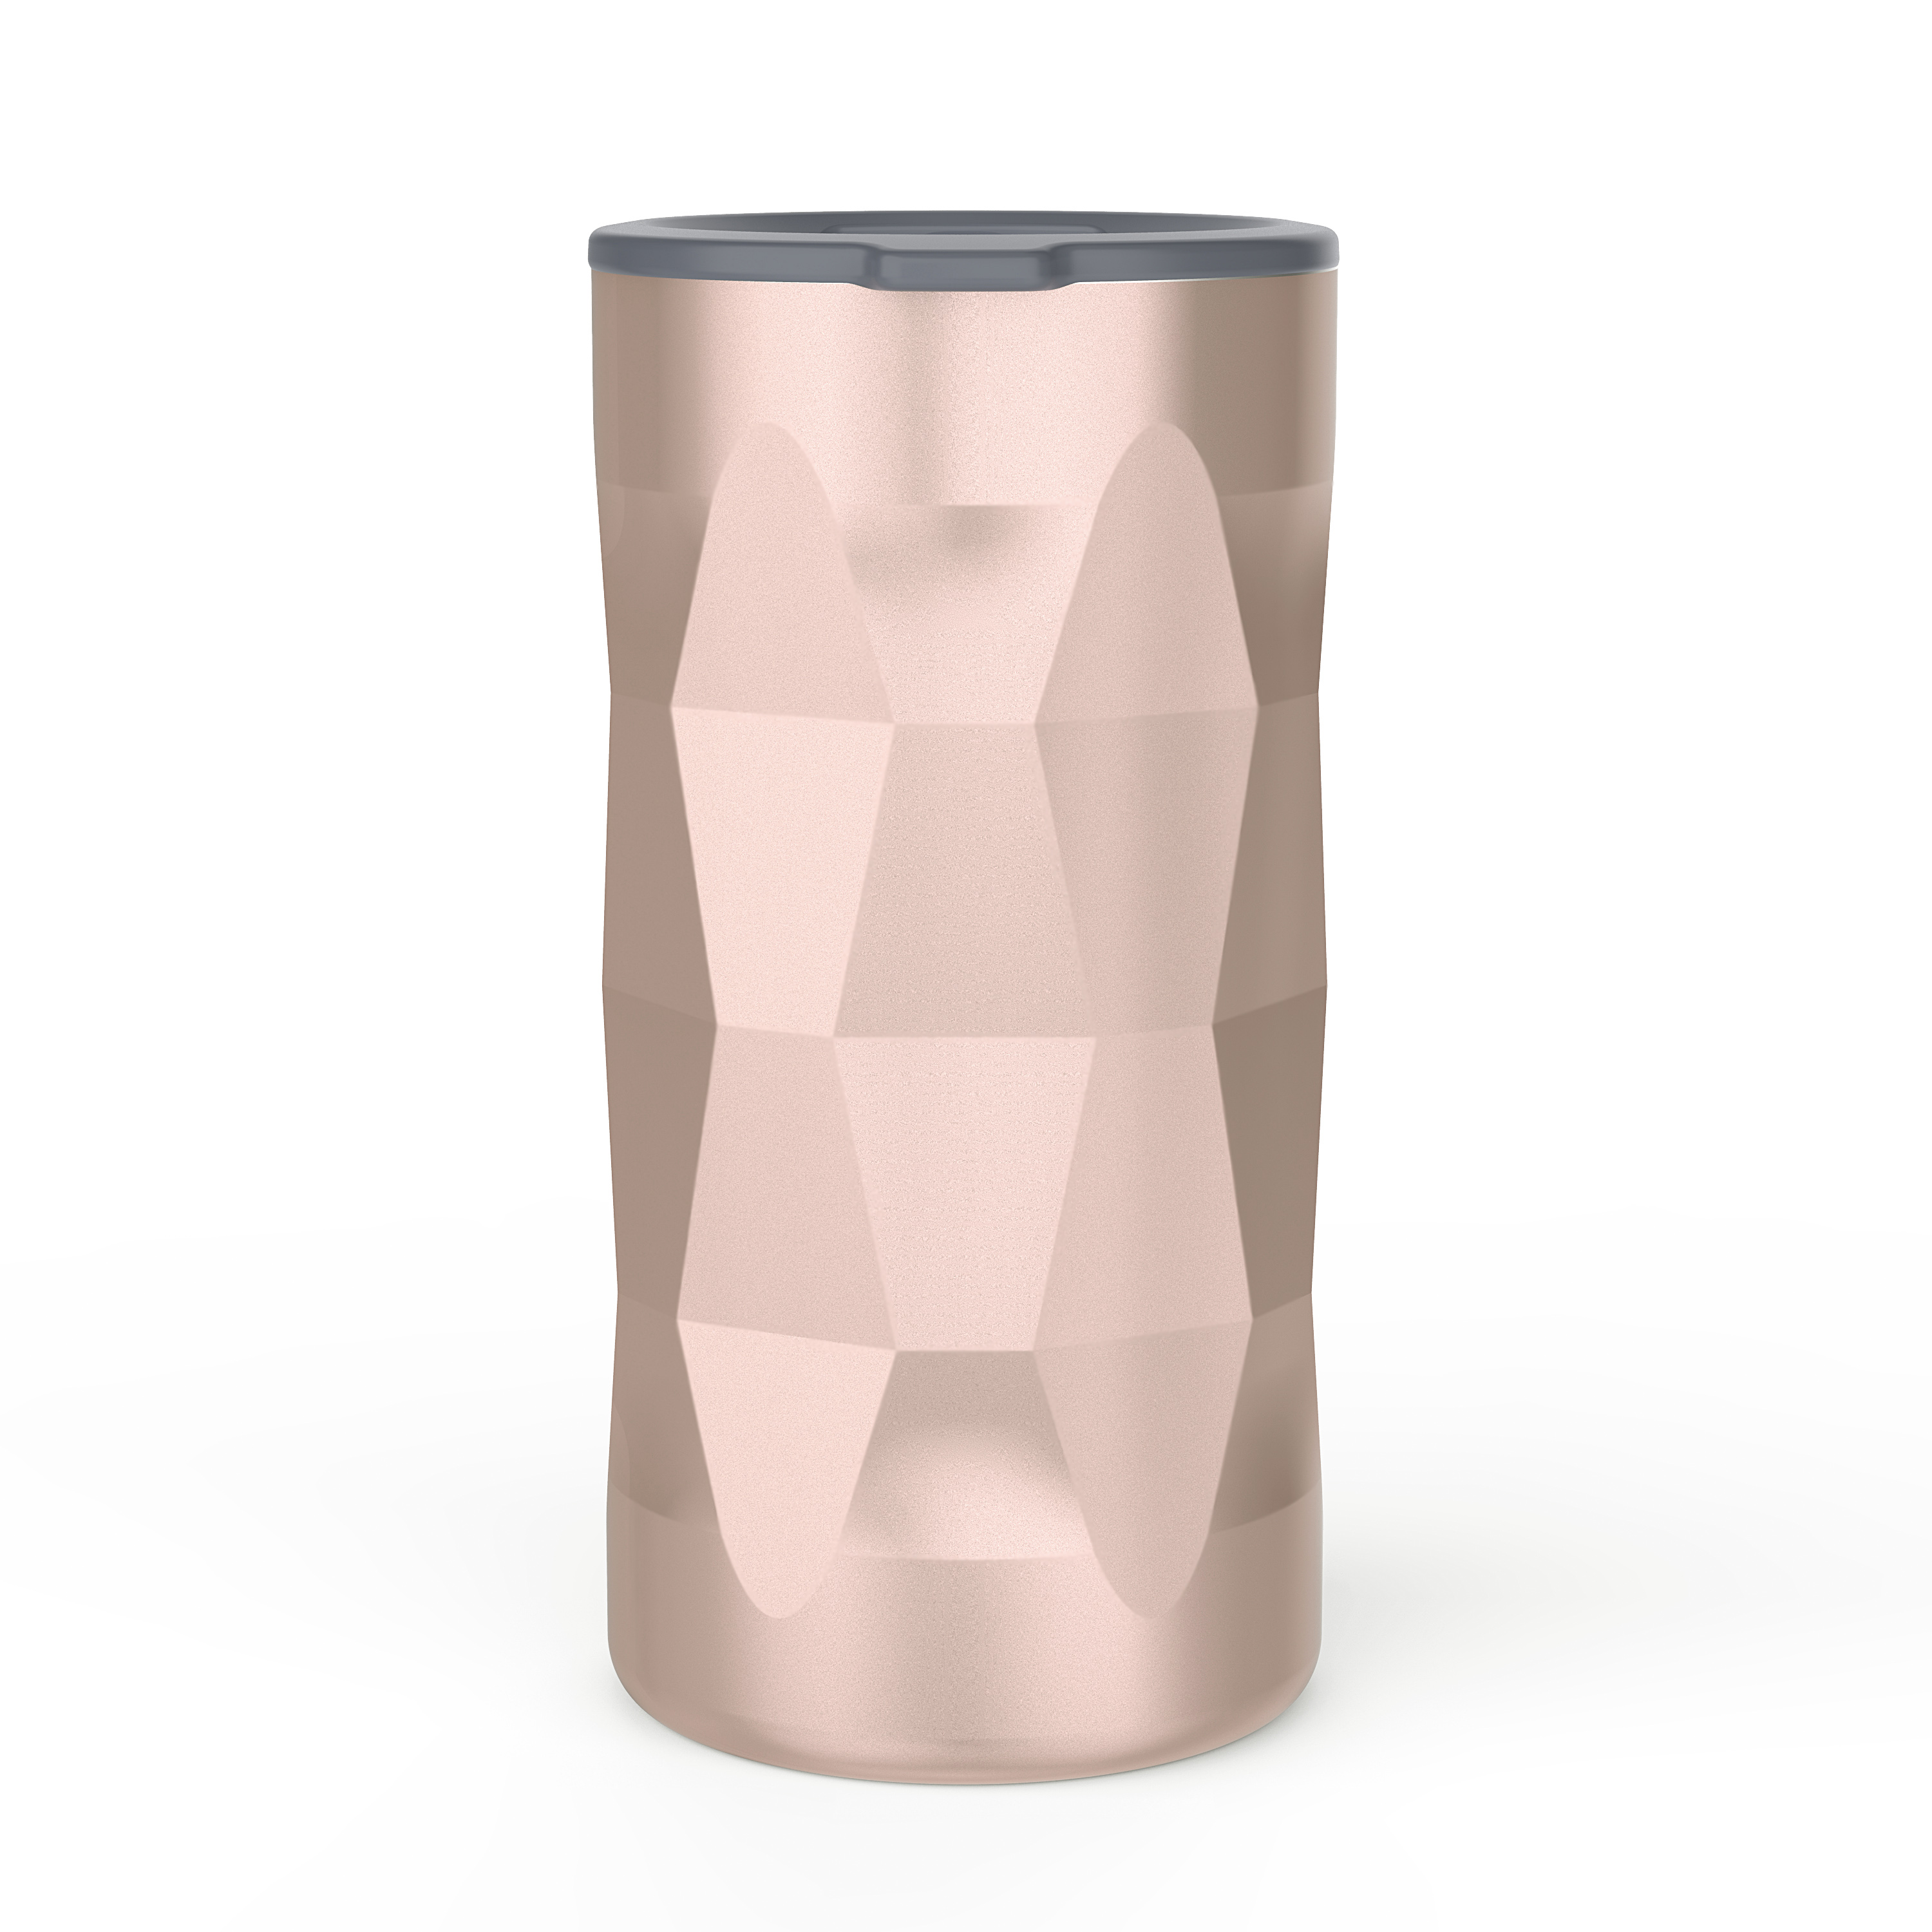 Fractal 12 ounce Vacuum Insulated Stainless Steel Tumbler, Rose Gold slideshow image 3